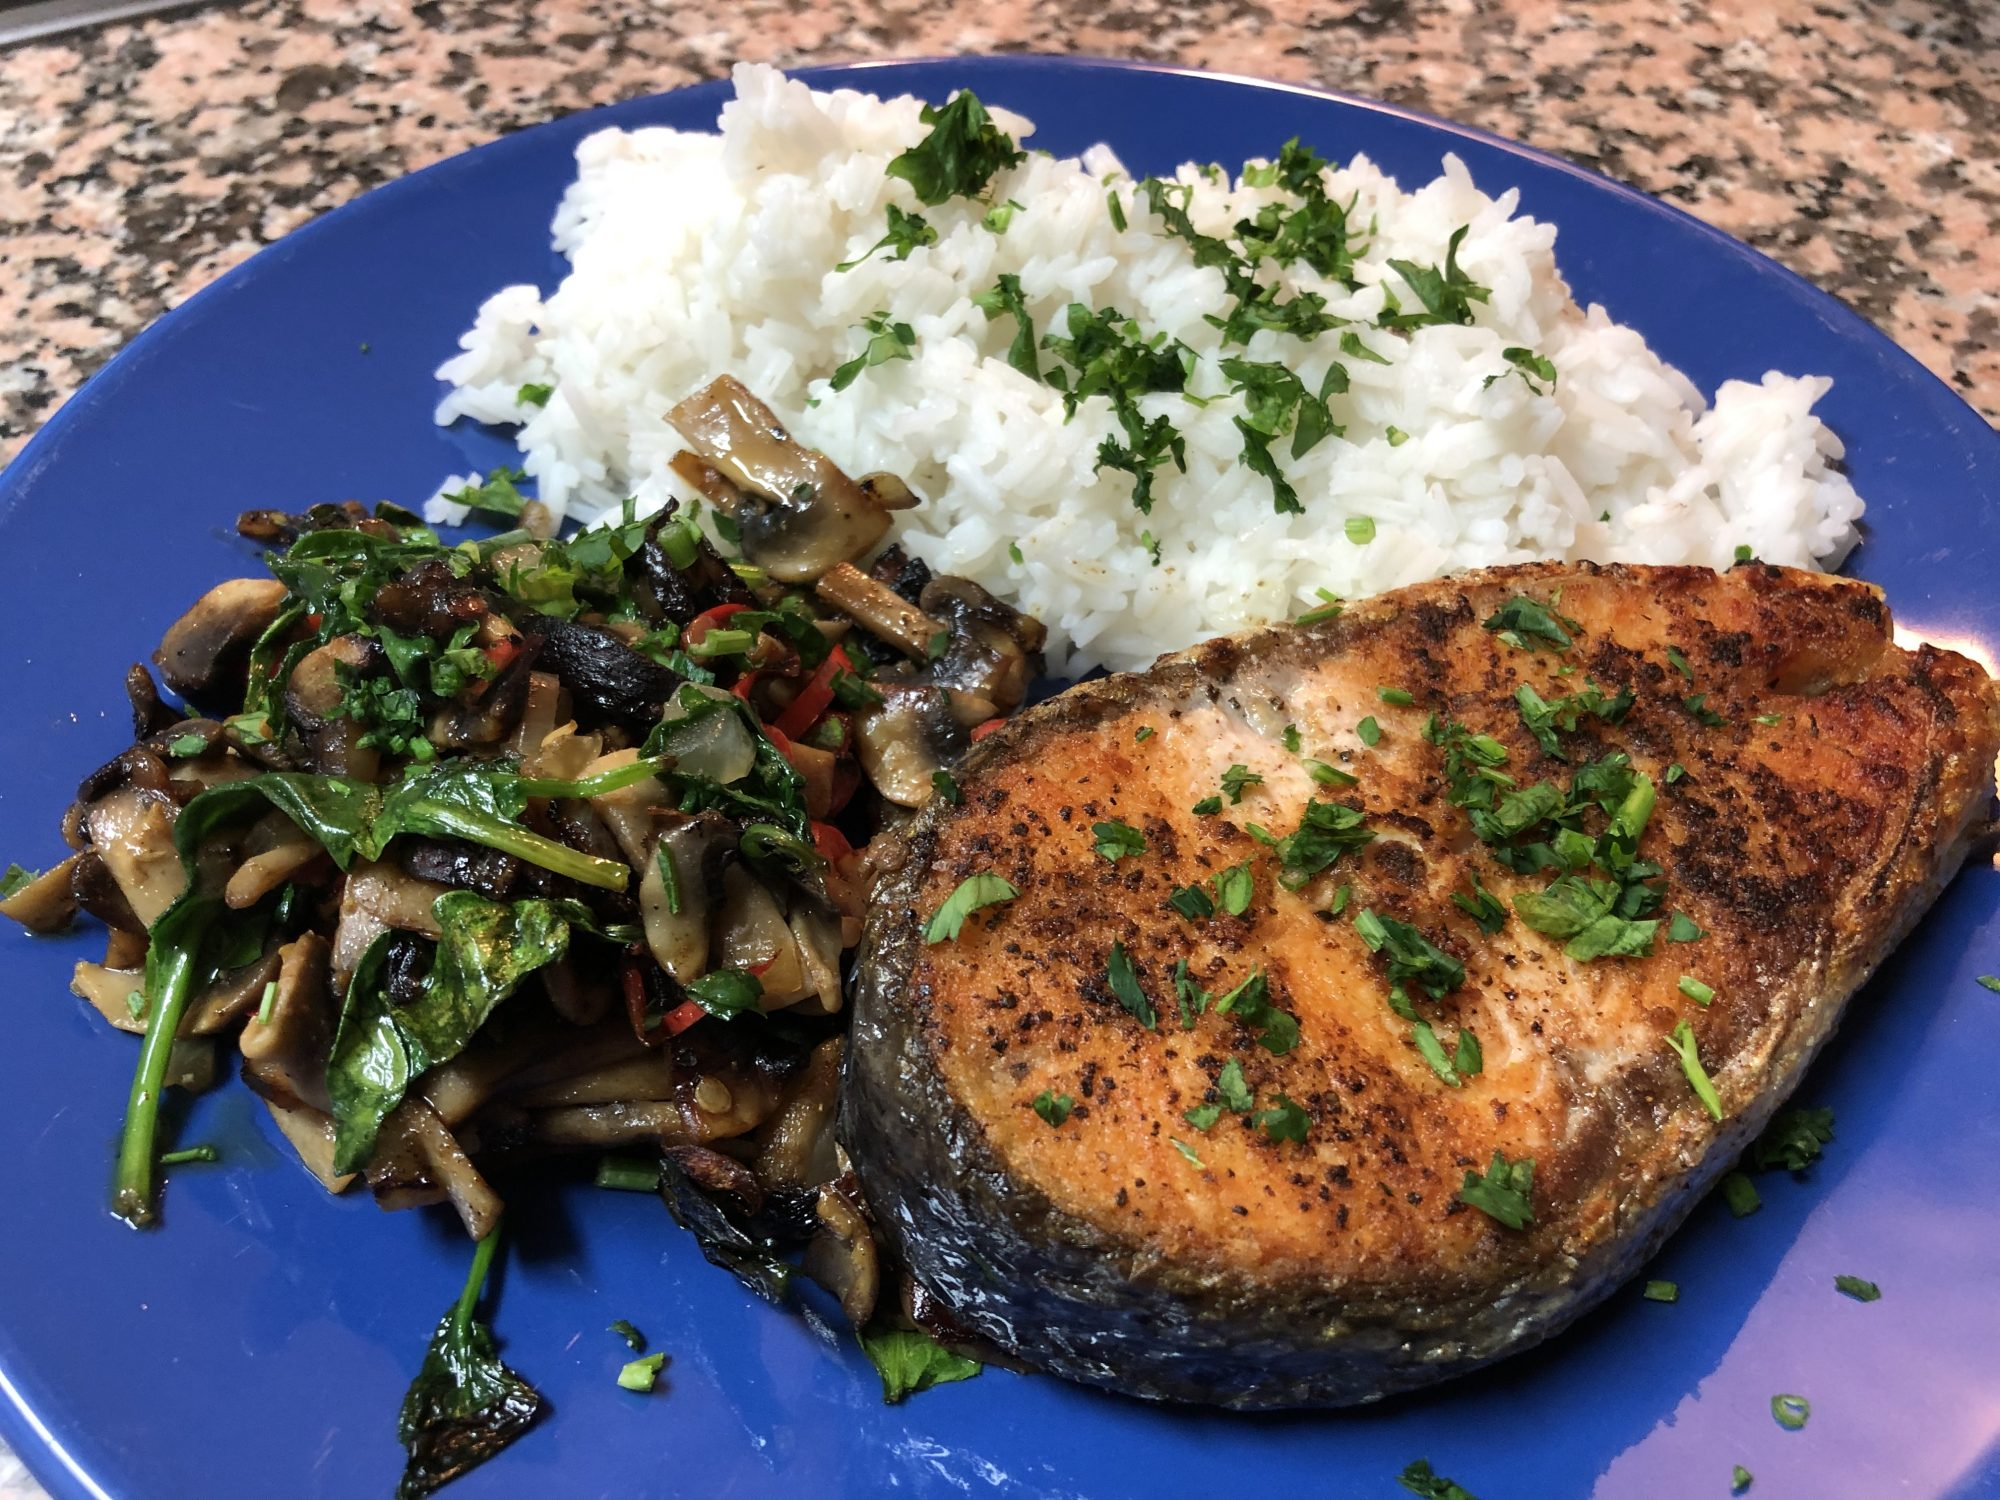 Salmon cutlet with spicy vegetables and parsley rice